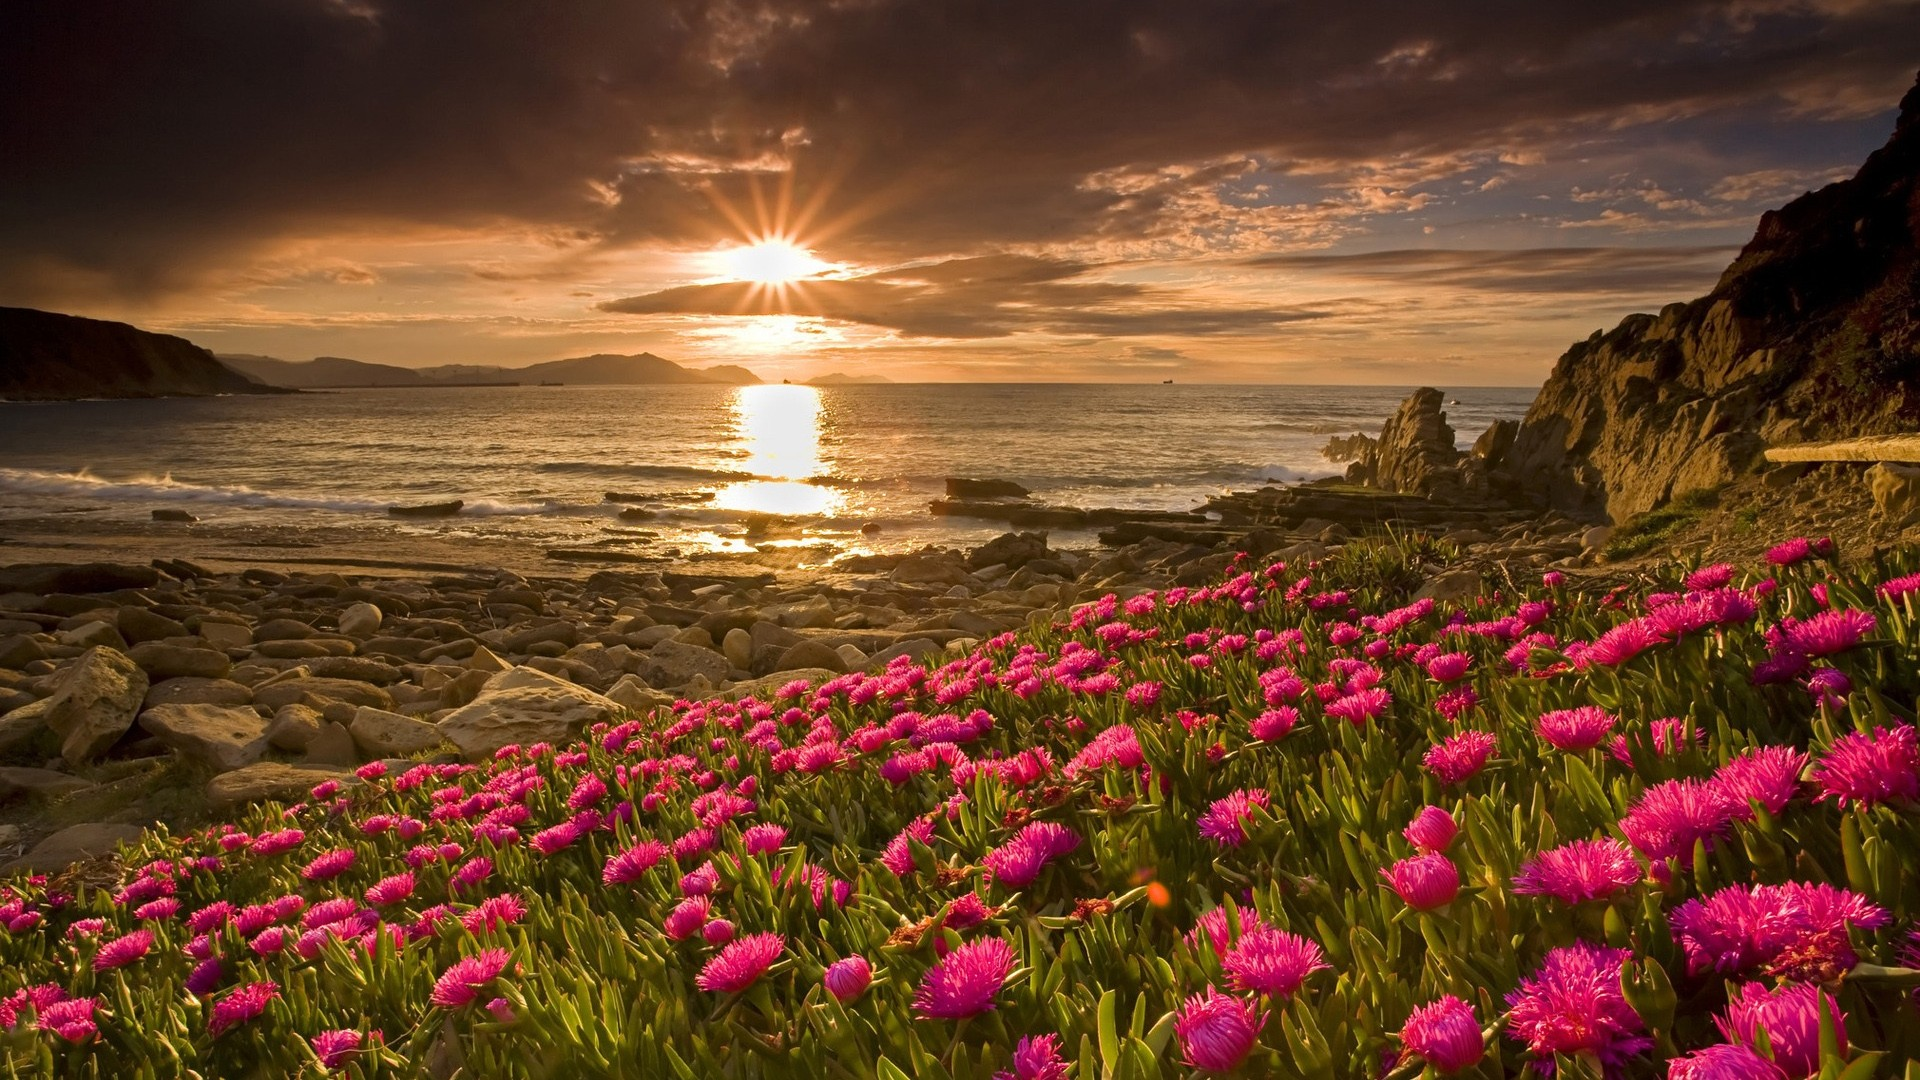 HD-Flowers-and-sunrise-nature-wallpaper